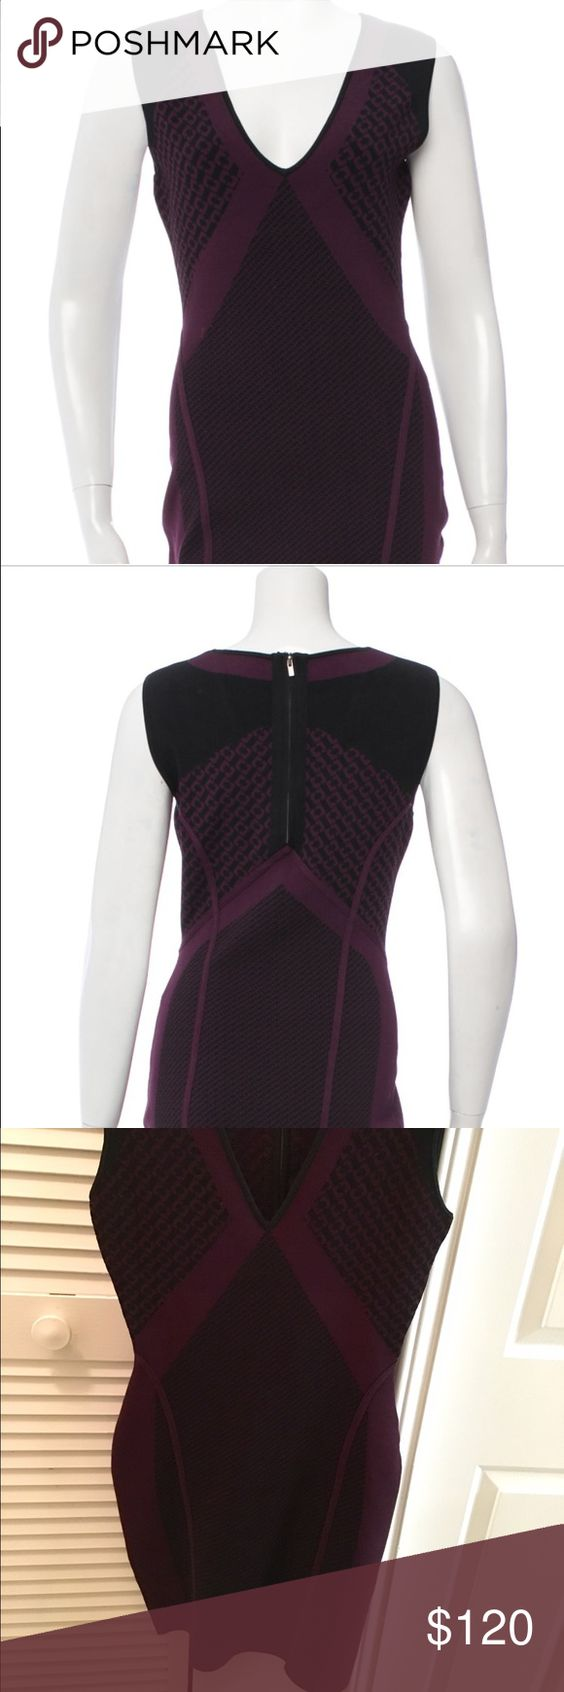 Diane Von Furstenberg  stretch bodycon dress S Authentic DVF dress / stretch knit bodycon / Purple and Black / size S / worn once / retails for $450 Diane von Furstenberg Dresses Mini